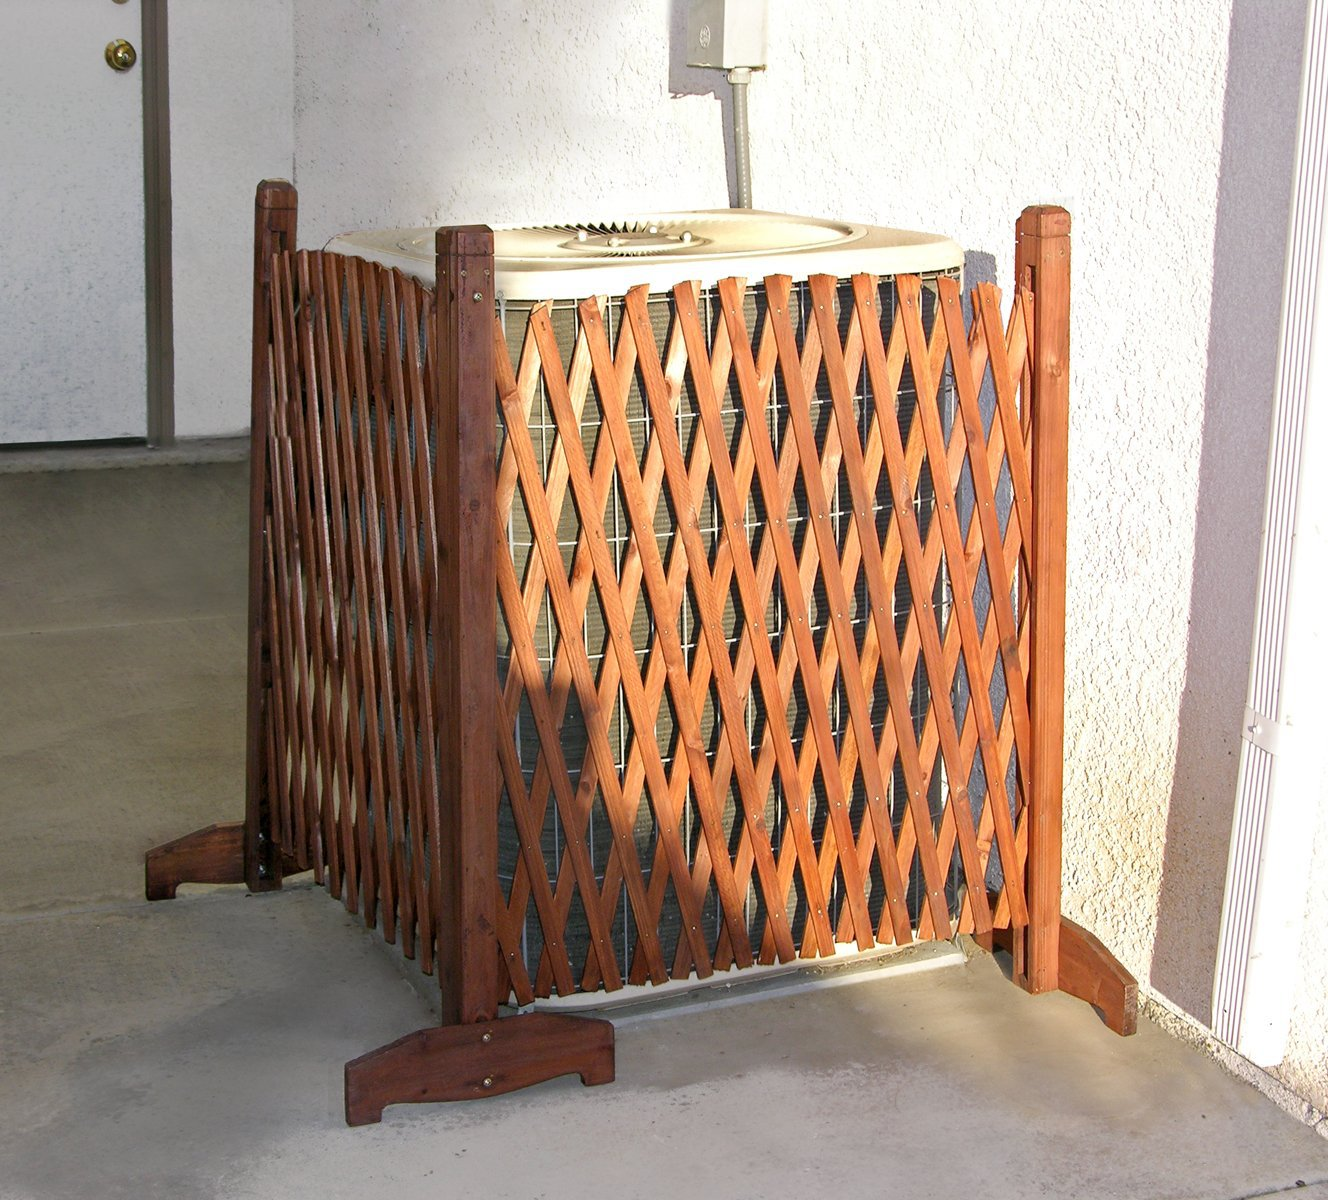 Wood lattice privacy fence screen ebay for Lattice panel privacy screen